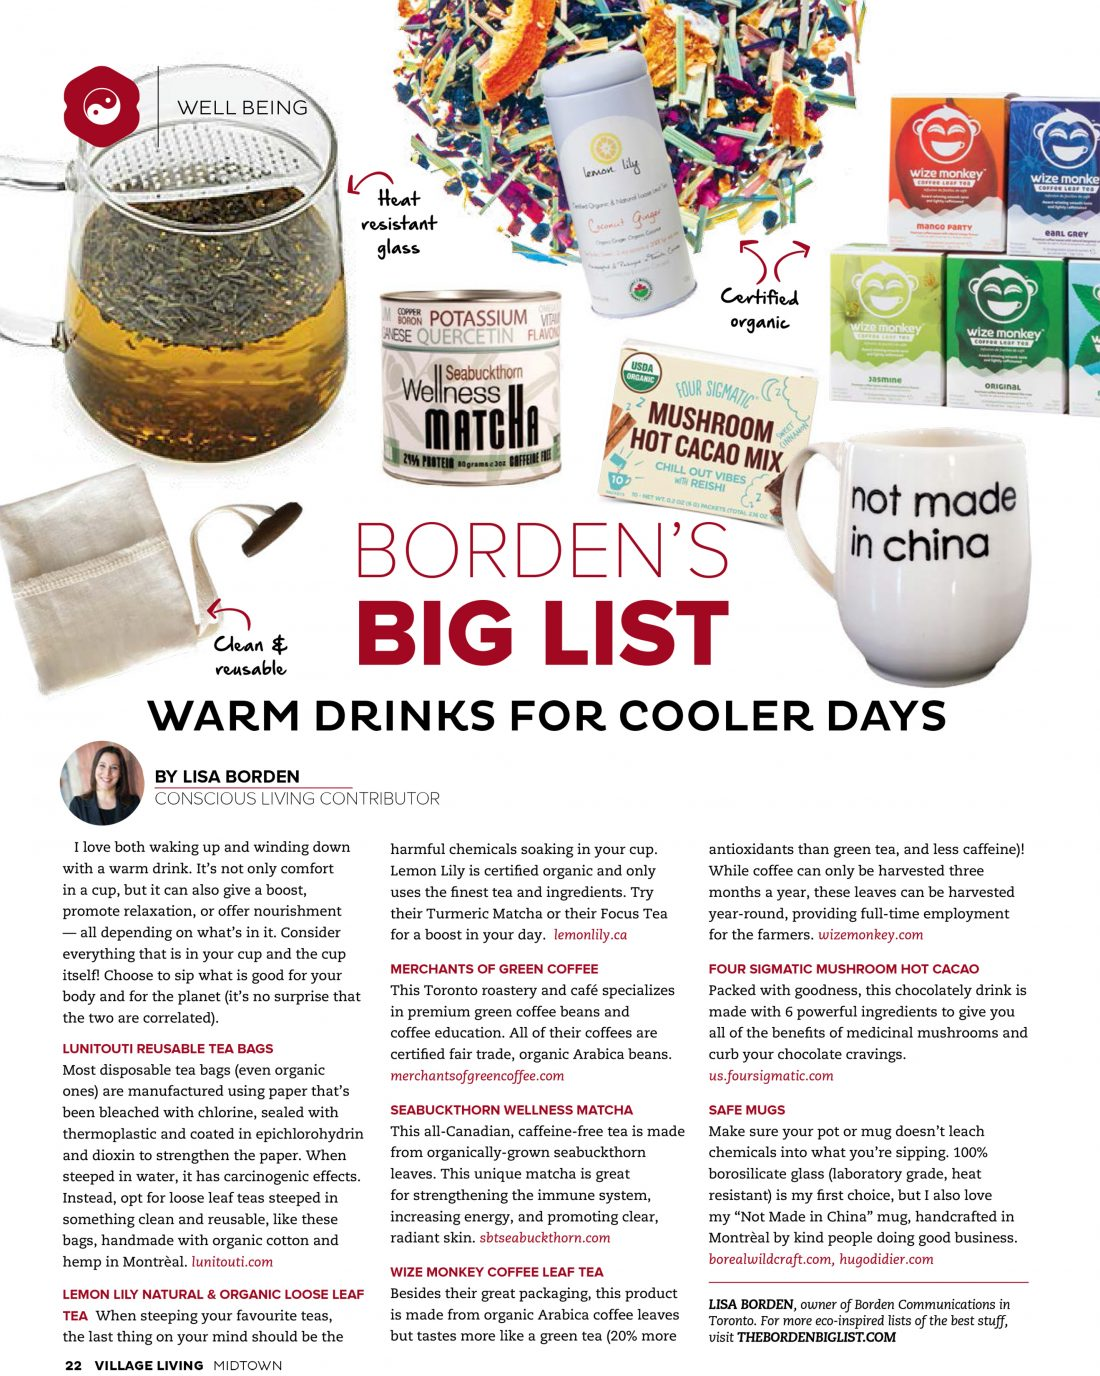 Warm Drinks for Cooler Days, Village Living Magazine